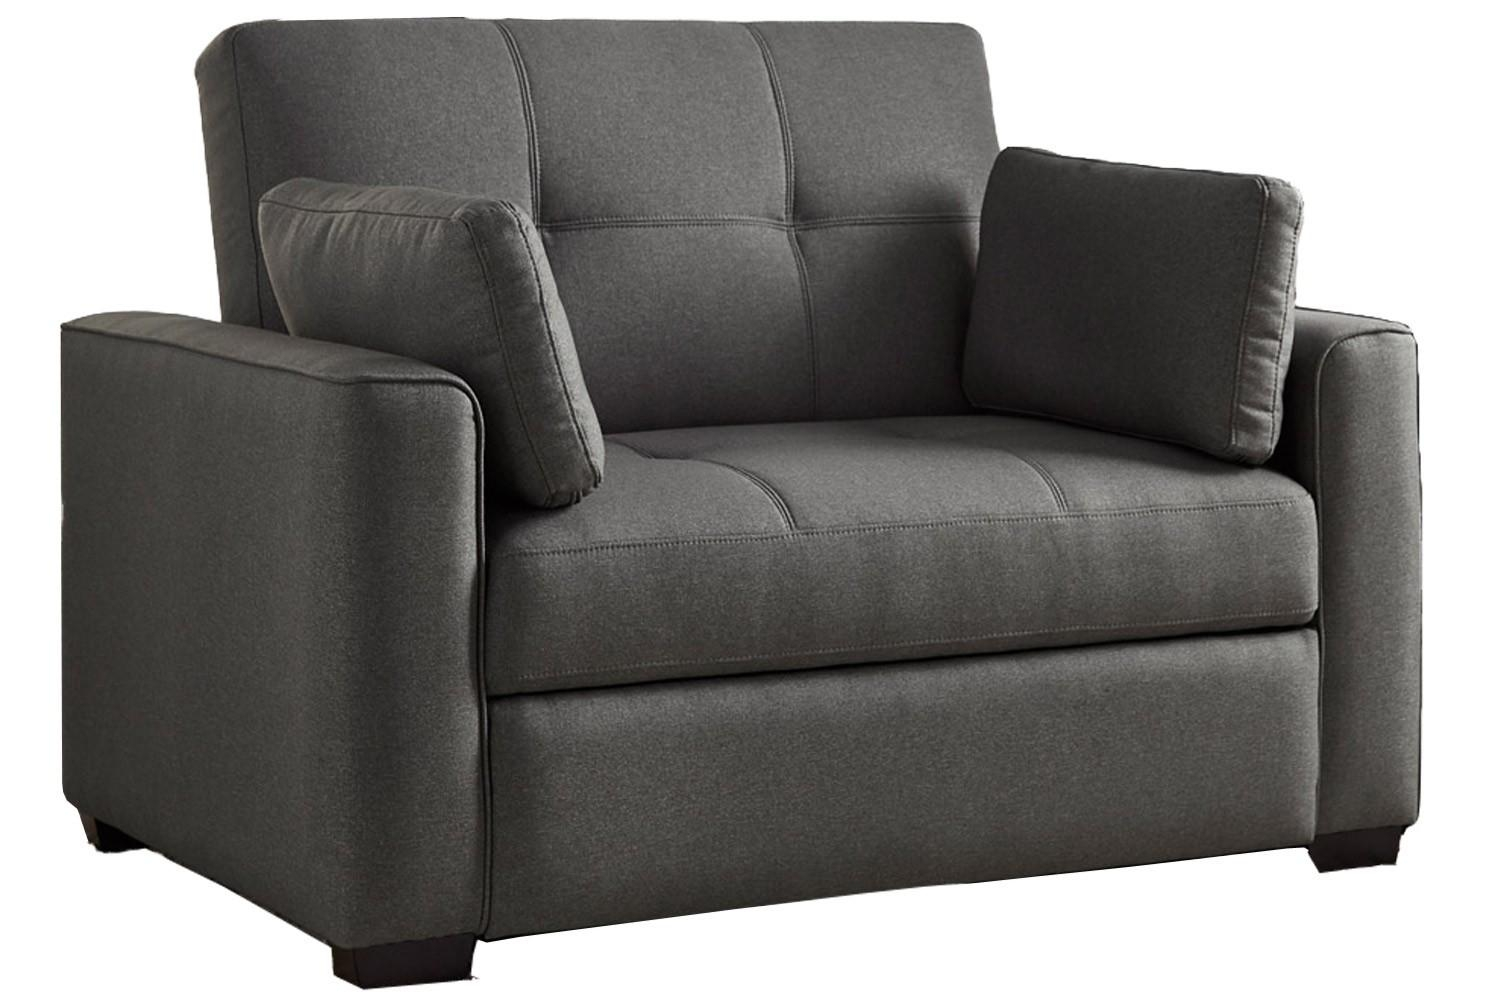 Sofas Center : Twin Sofa Chairs For Salesofa Chair Uk Ikea In Sofa Bed Chairs (Image 20 of 20)